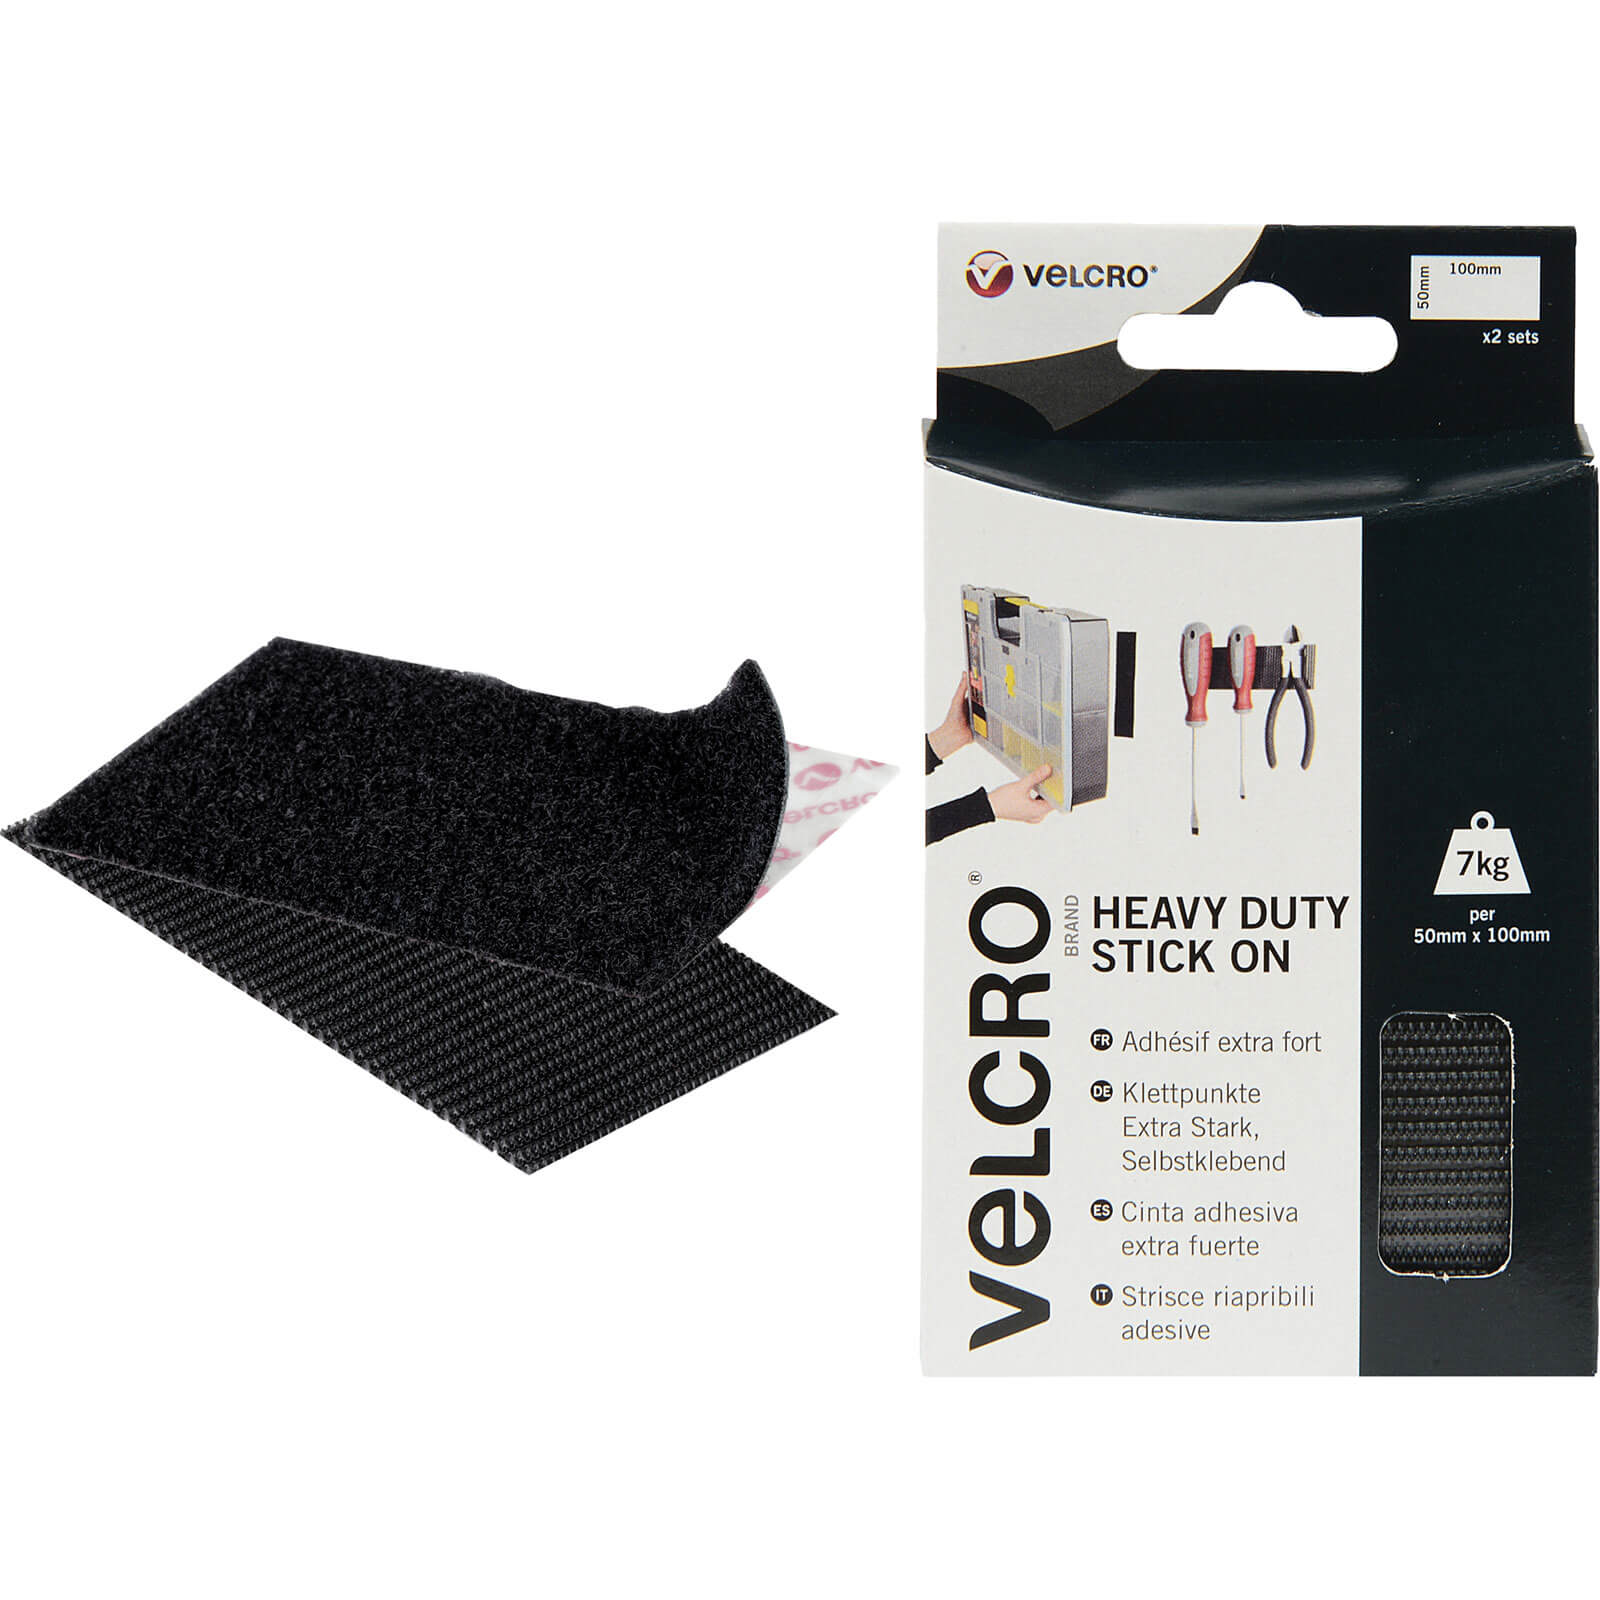 Image of Velcro Heavy Duty Stick On Strips Black 50mm 100mm Pack of 2